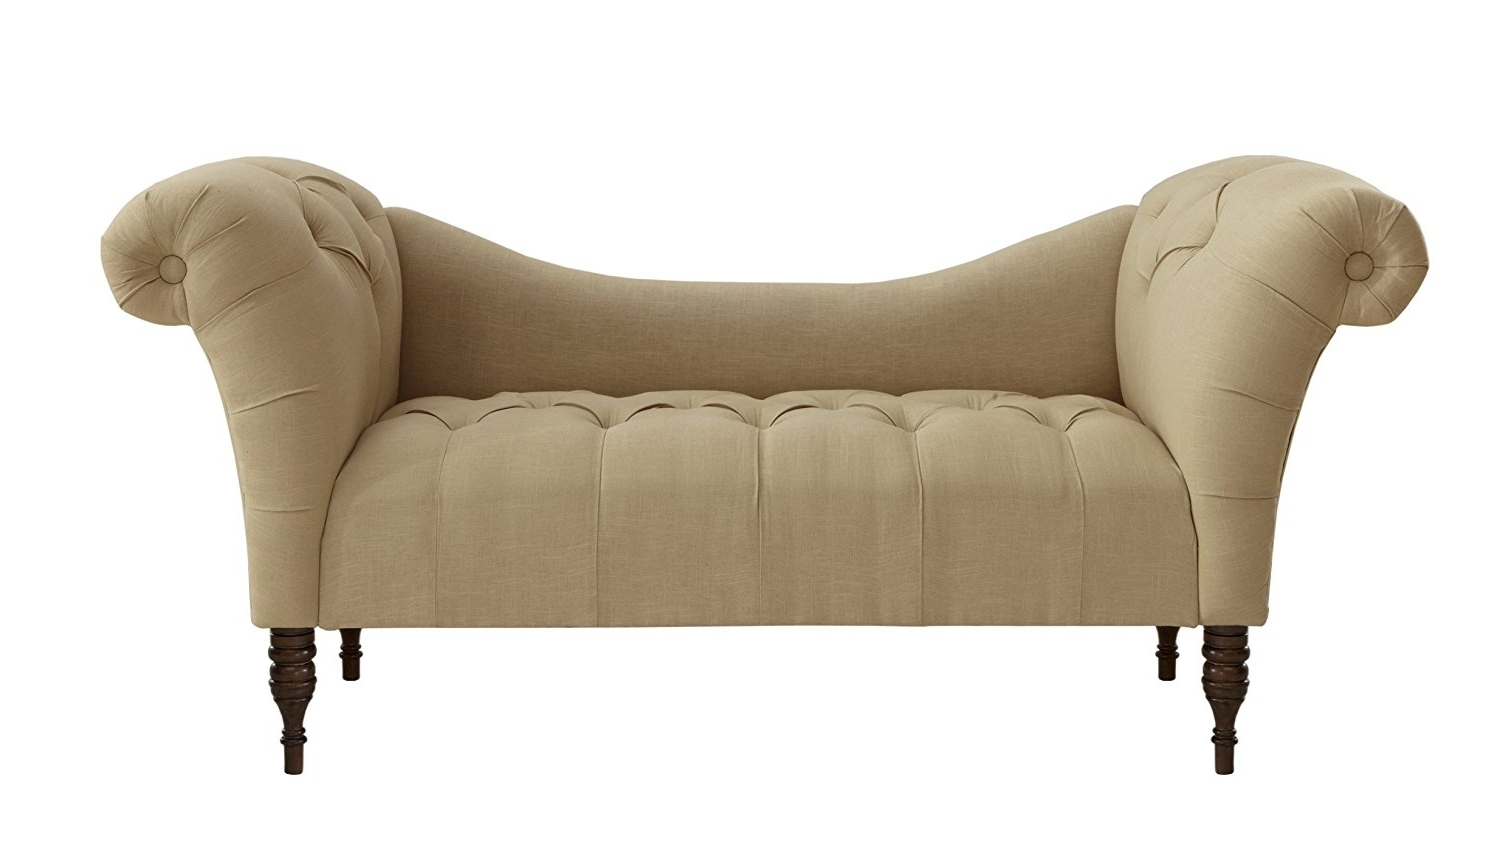 Amazon: Skyline Furniture Tufted Chaise Lounge In Linen Throughout Preferred Chaise Benchs (View 1 of 15)